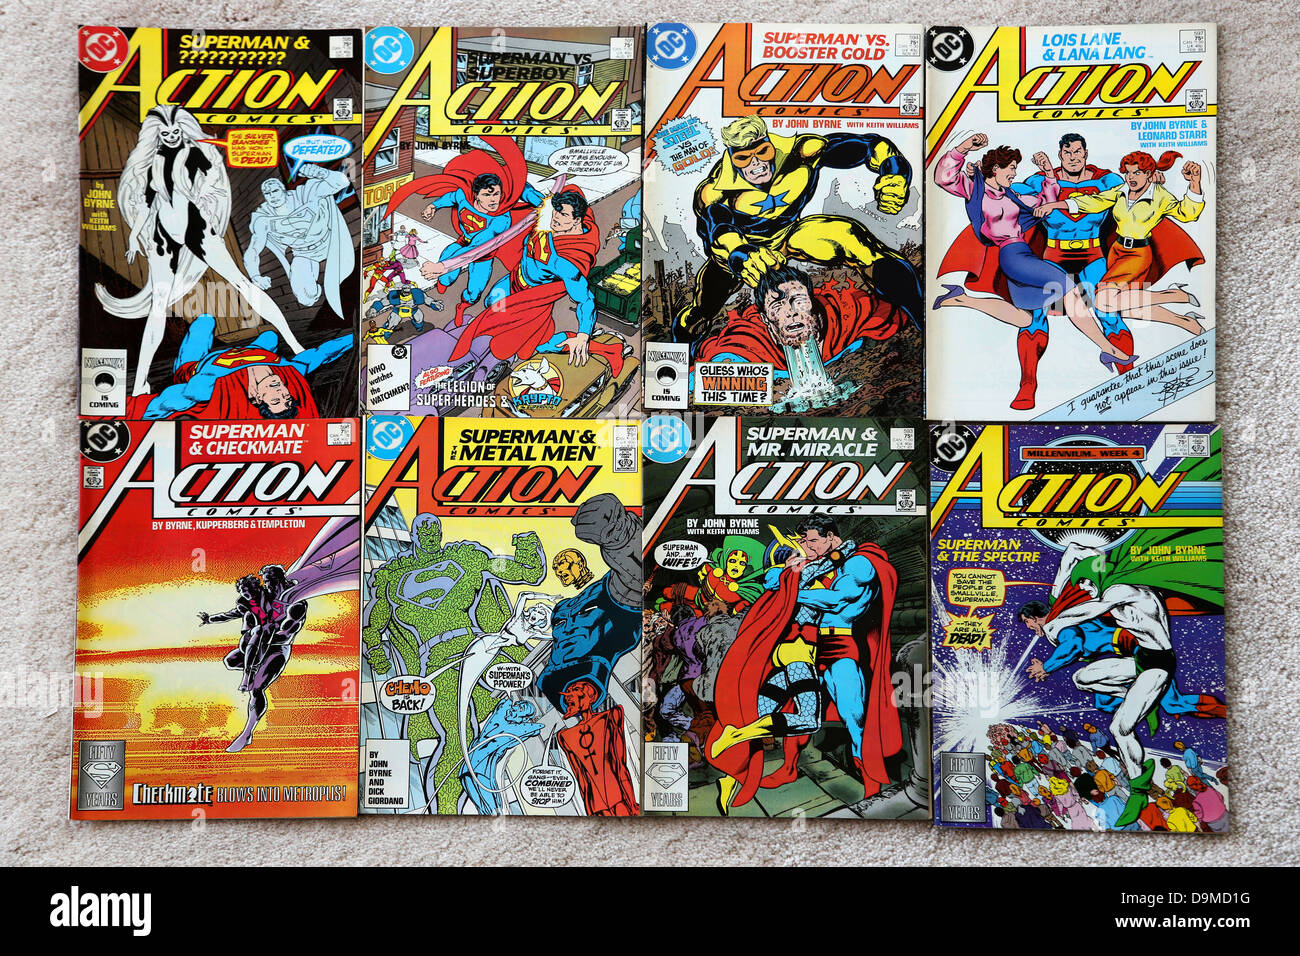 Collection Of DC Comics Superman Action Comics - Stock Image